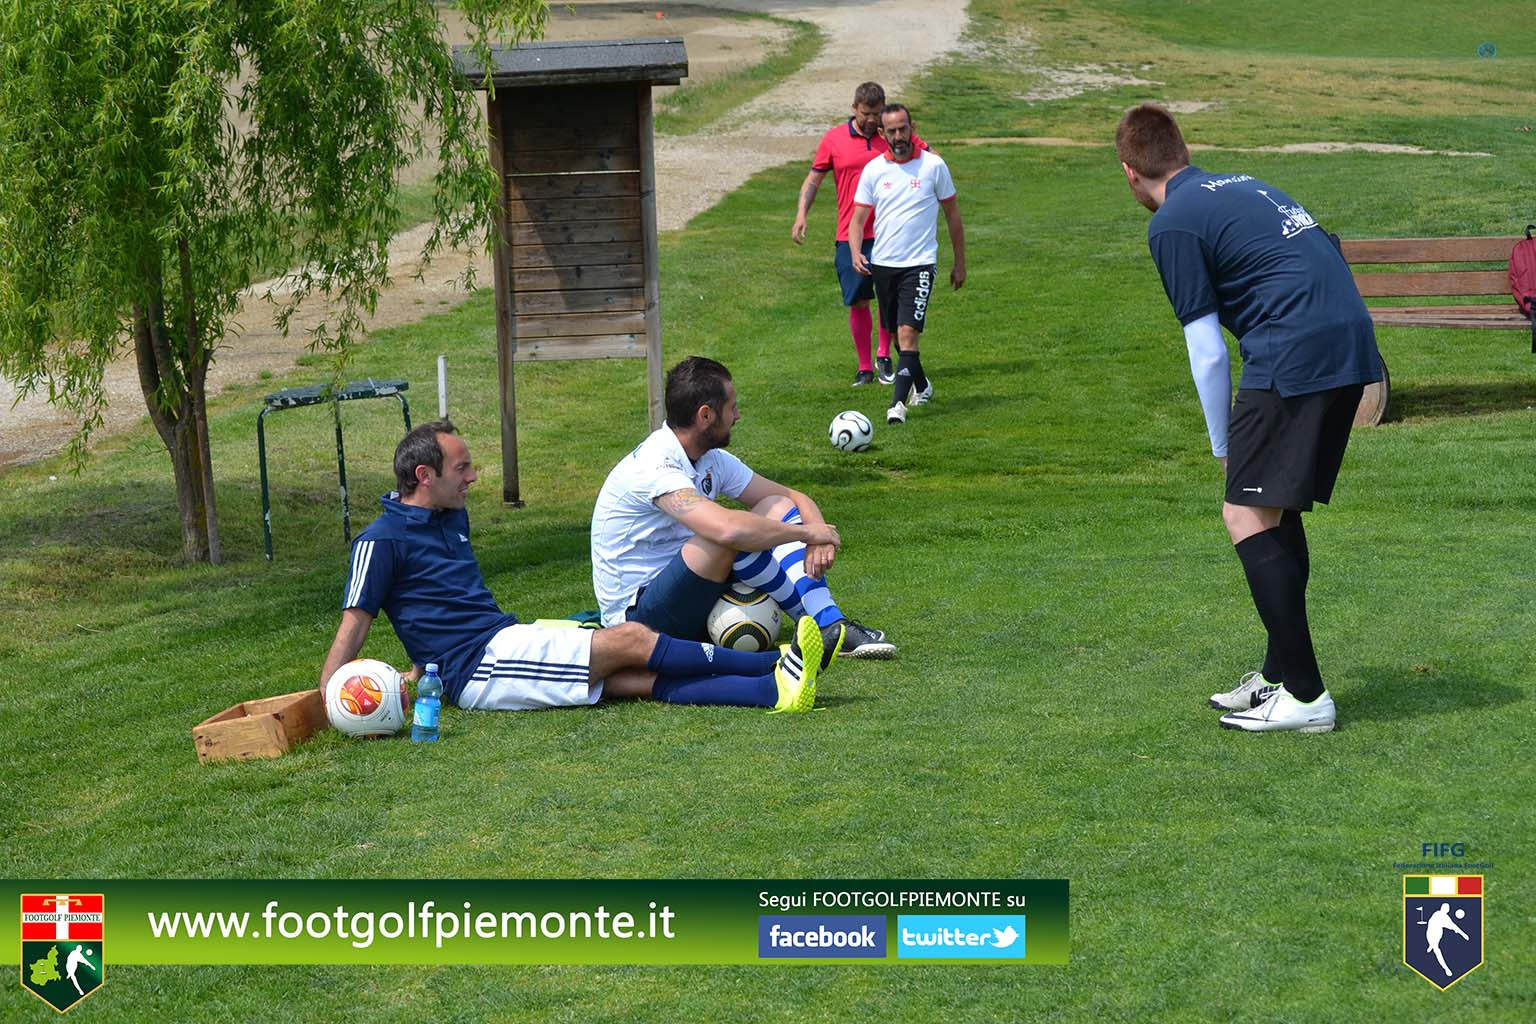 FOTO 9 Regions' Cup Footgolf Piemonte 2016 Golf Città di Asti (At) 30apr16-65